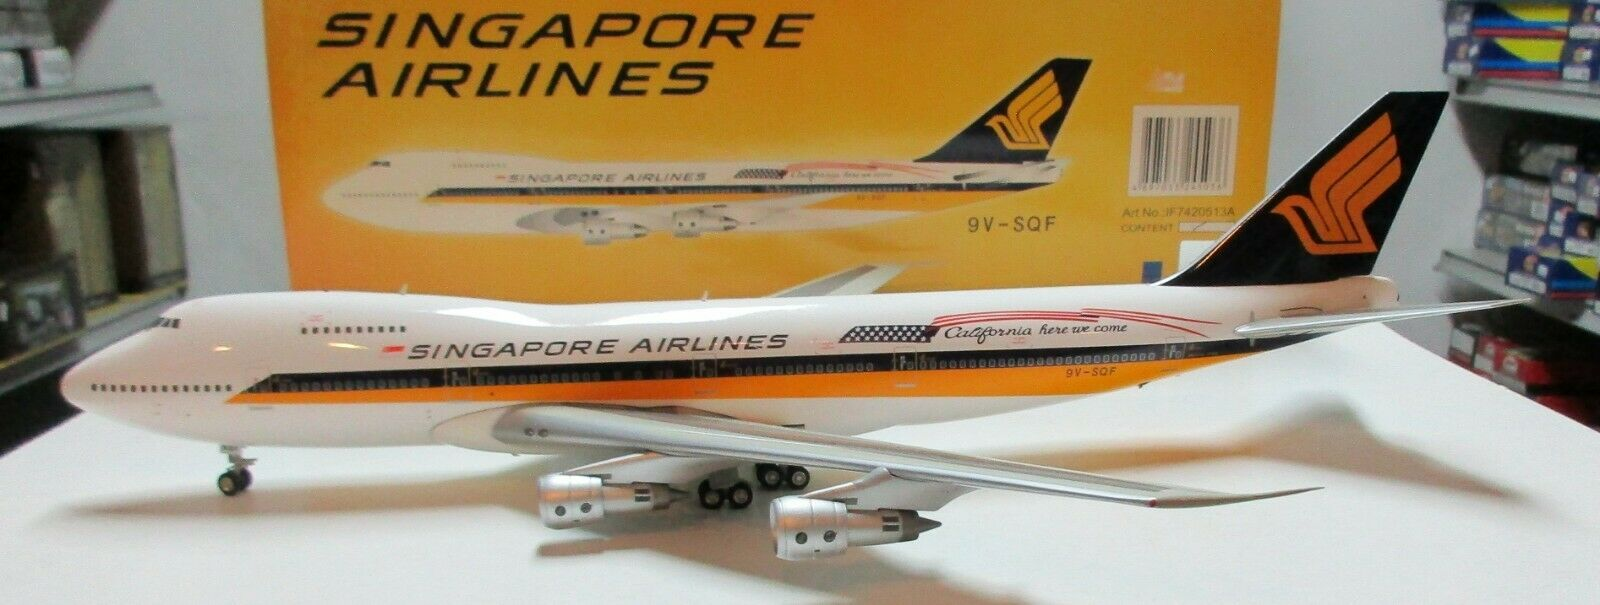 Inflight 200 - 1 200 scale 747-200 Singapore Airlines   9V-SQF - IF7420513A